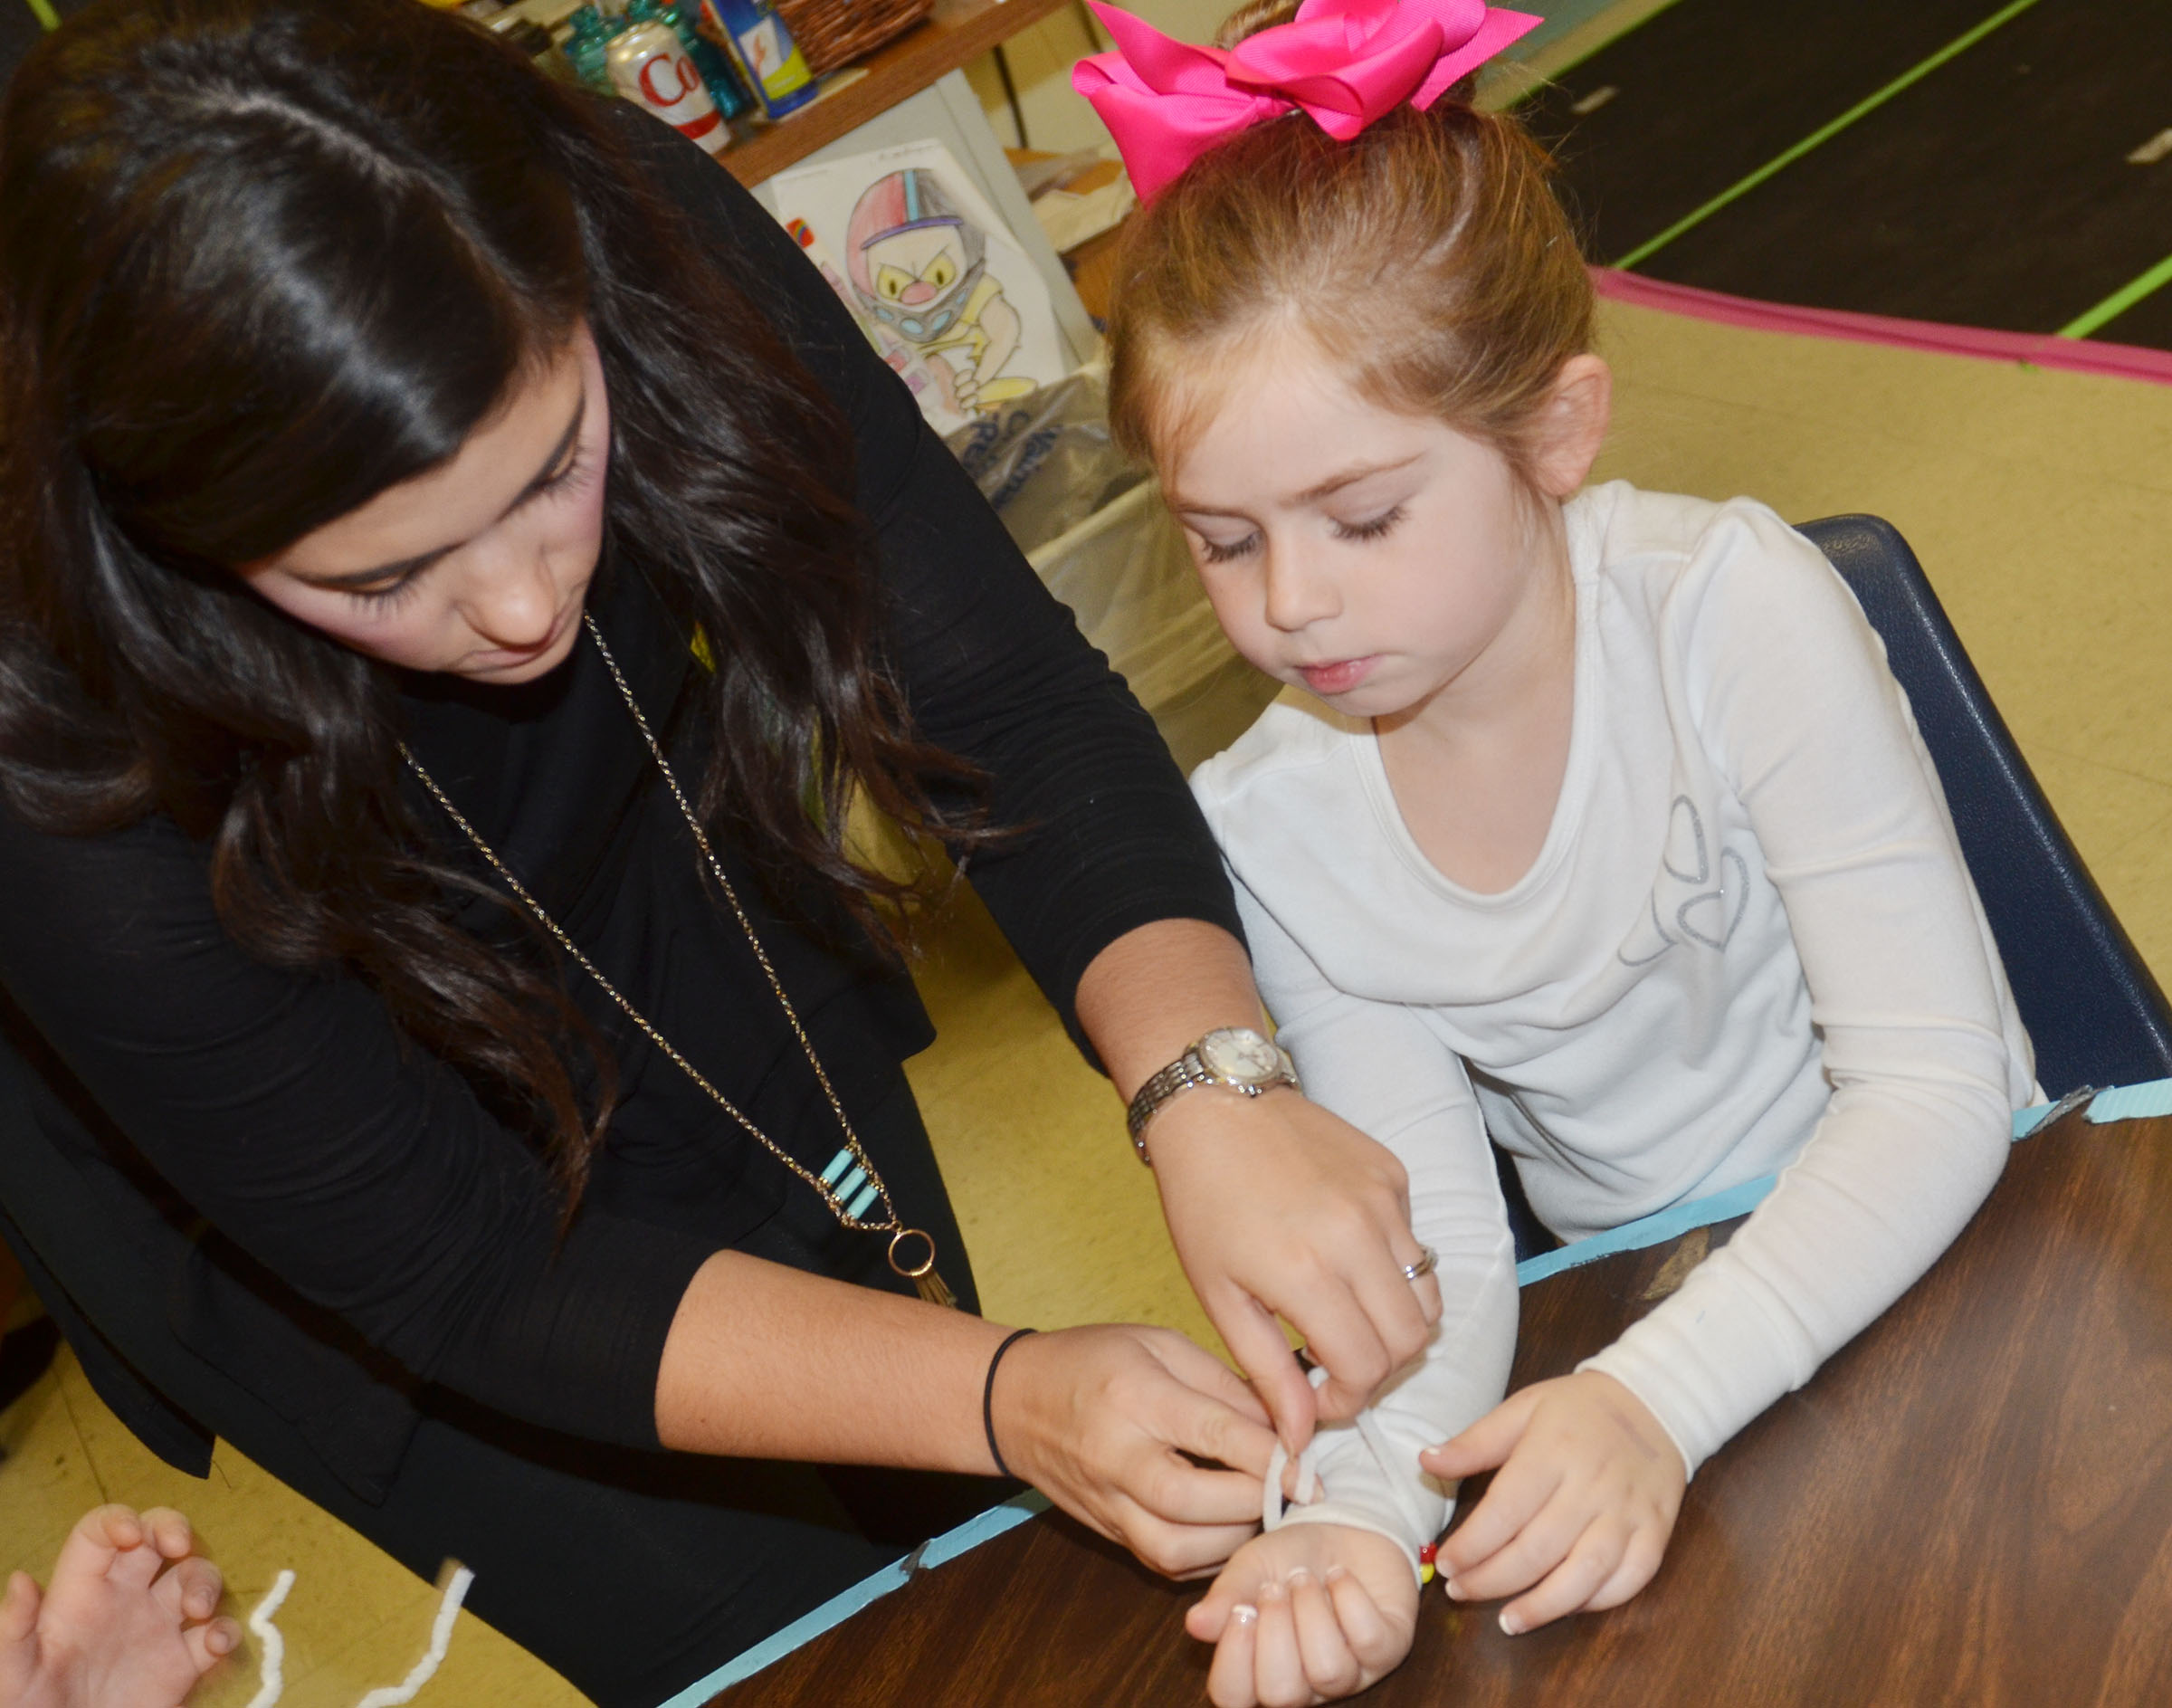 CES teacher Hailey Ogle helps first-grader Lainey Price fasten her Thanksgiving bracelet.